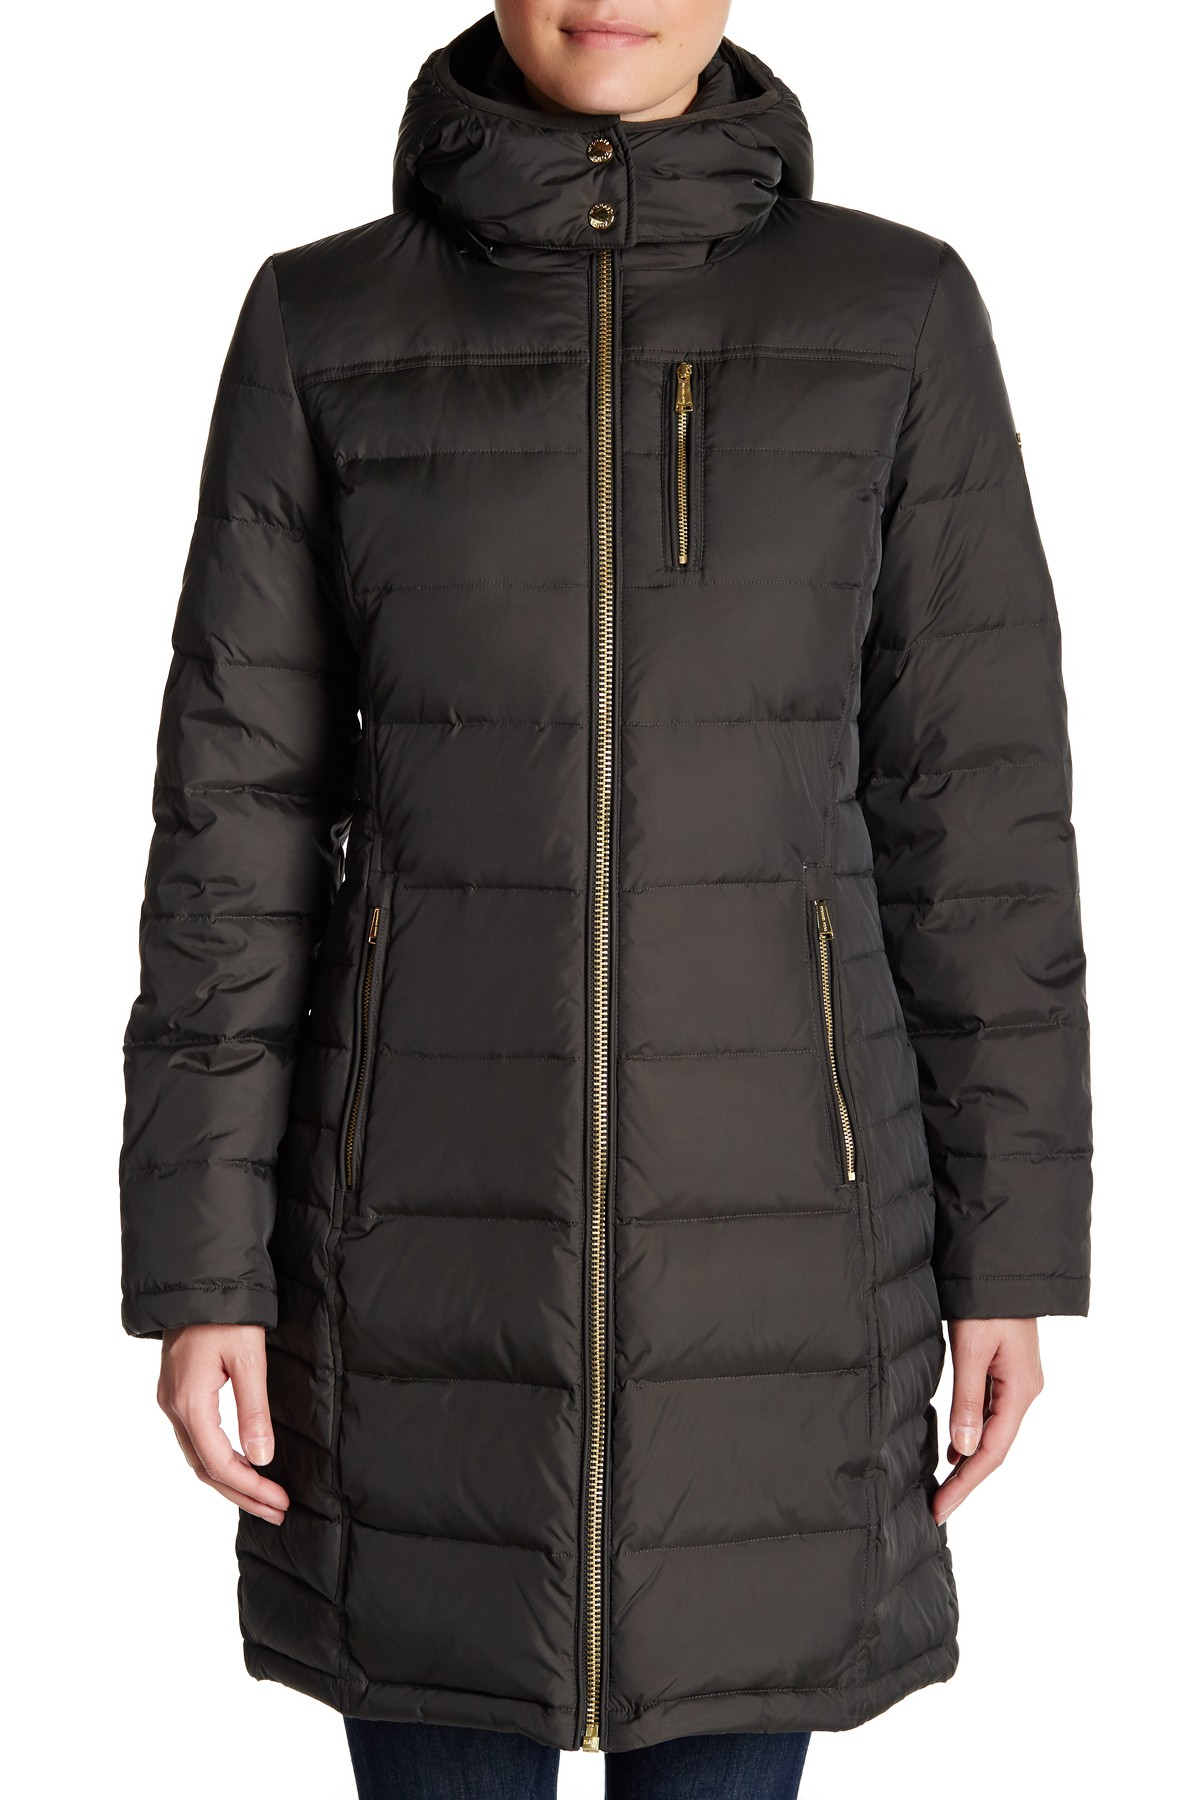 Michael Kors Hooded Down Amp Feather Quilted Coat In Black